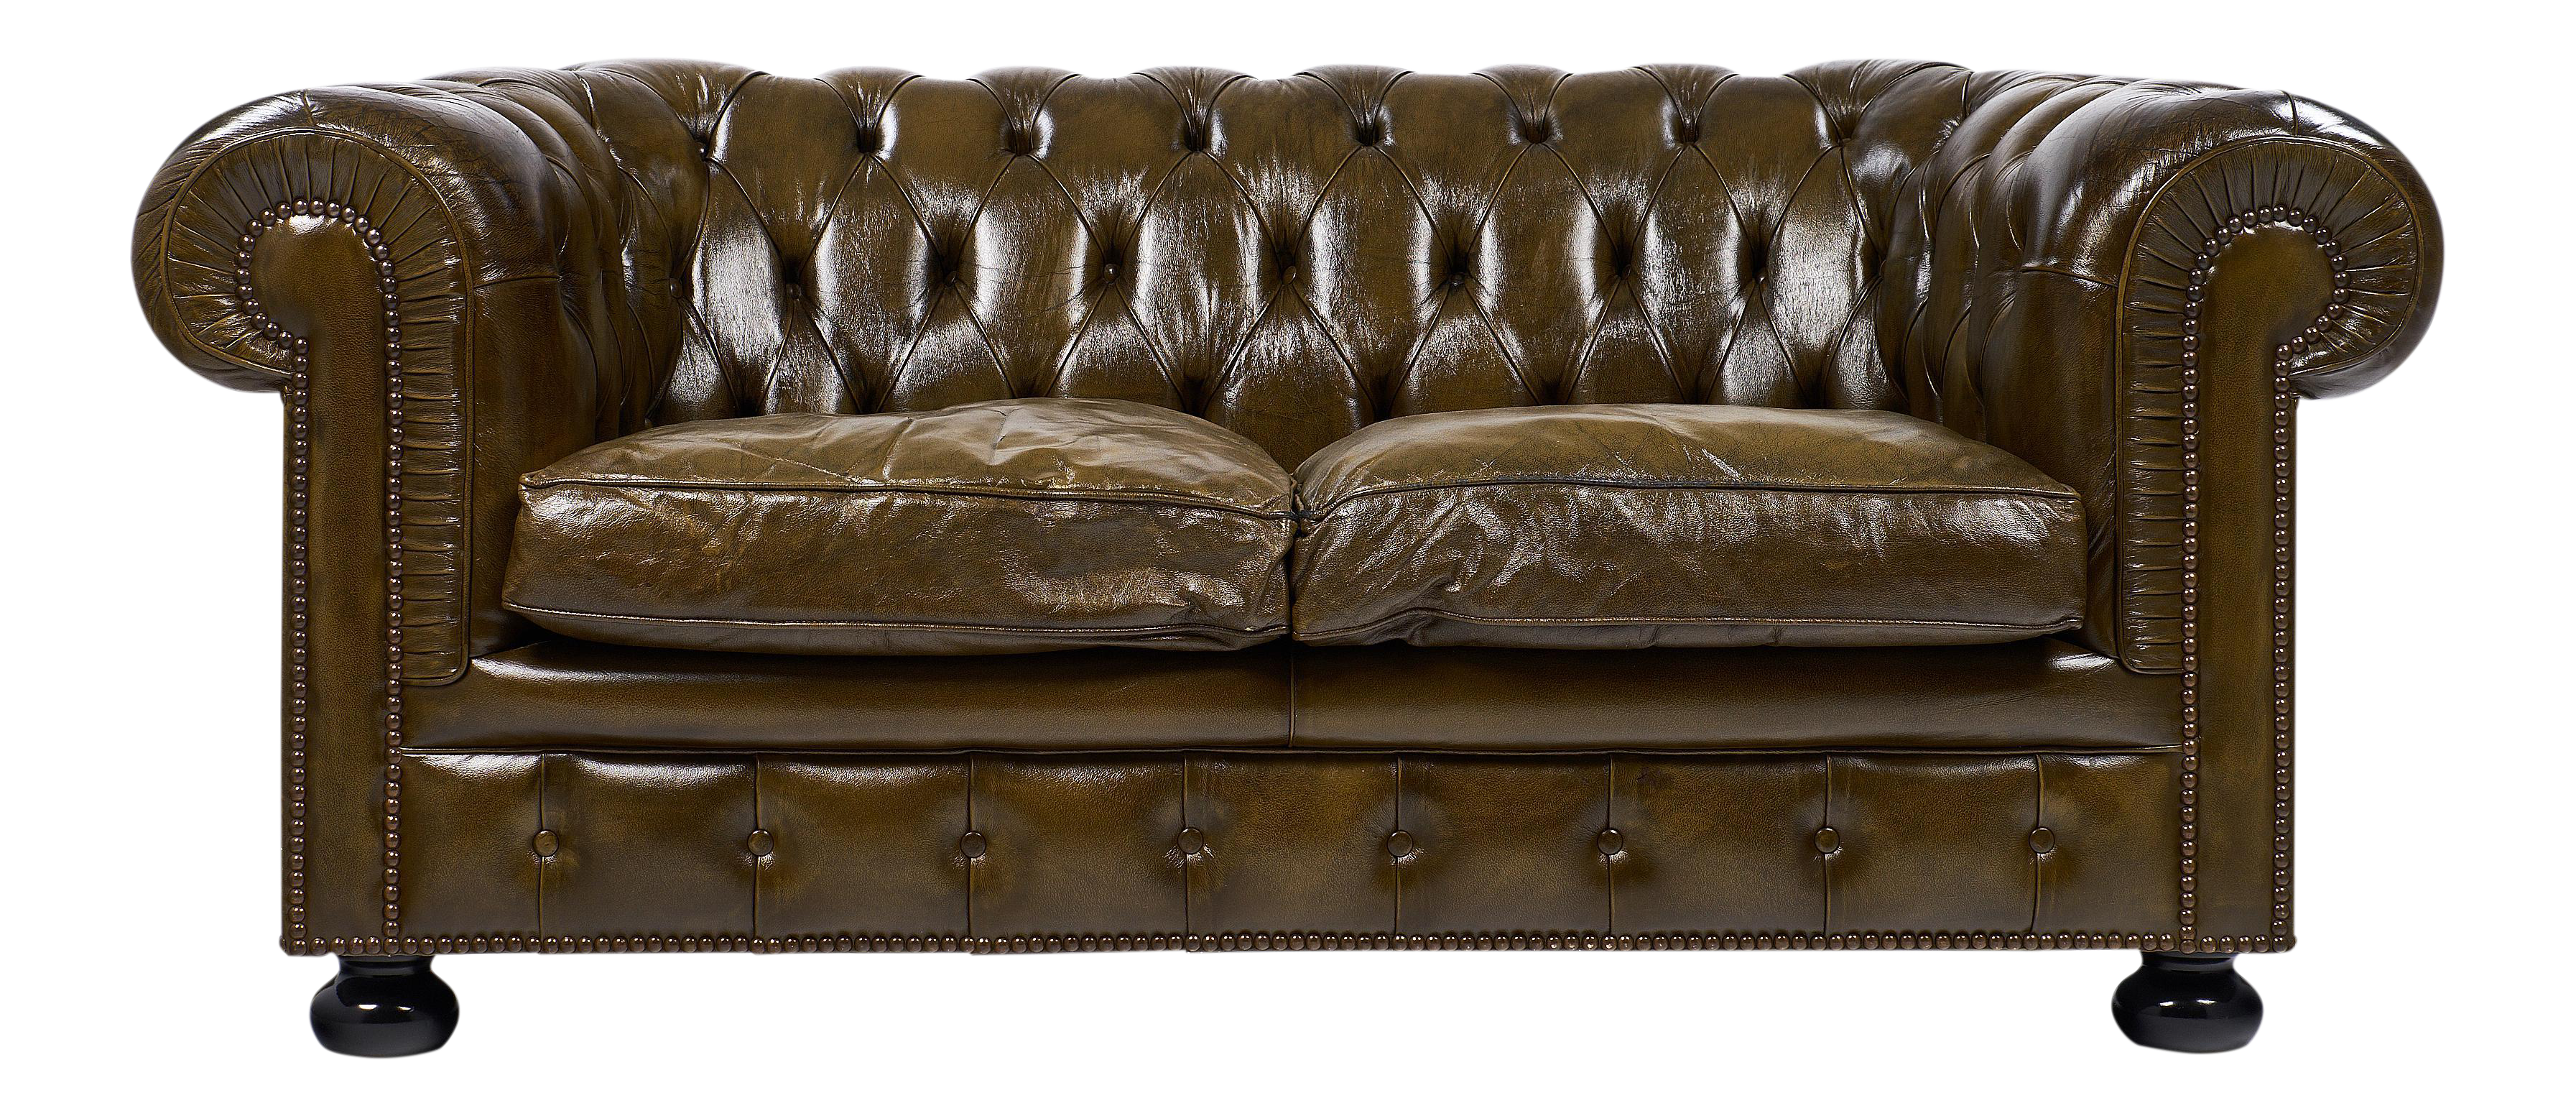 Leather couch png. Circa vintage english chesterfield